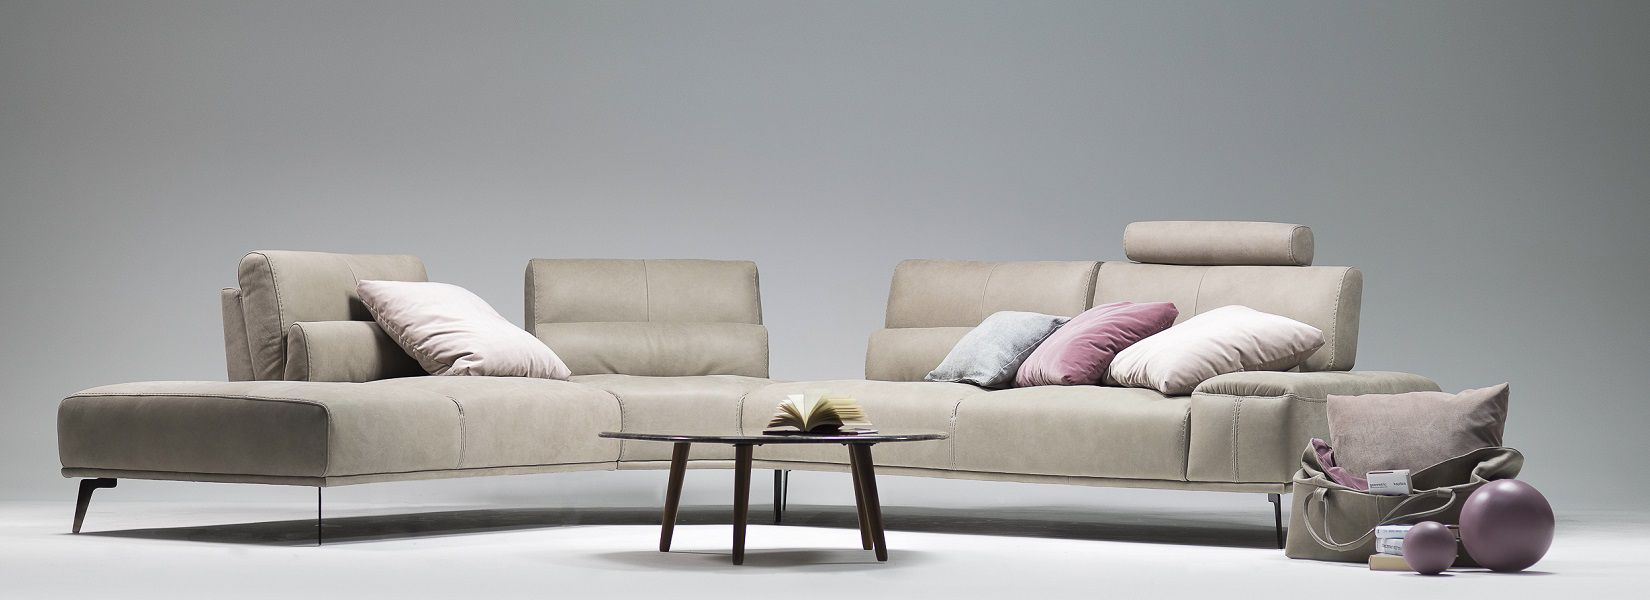 What makes danish furniture different